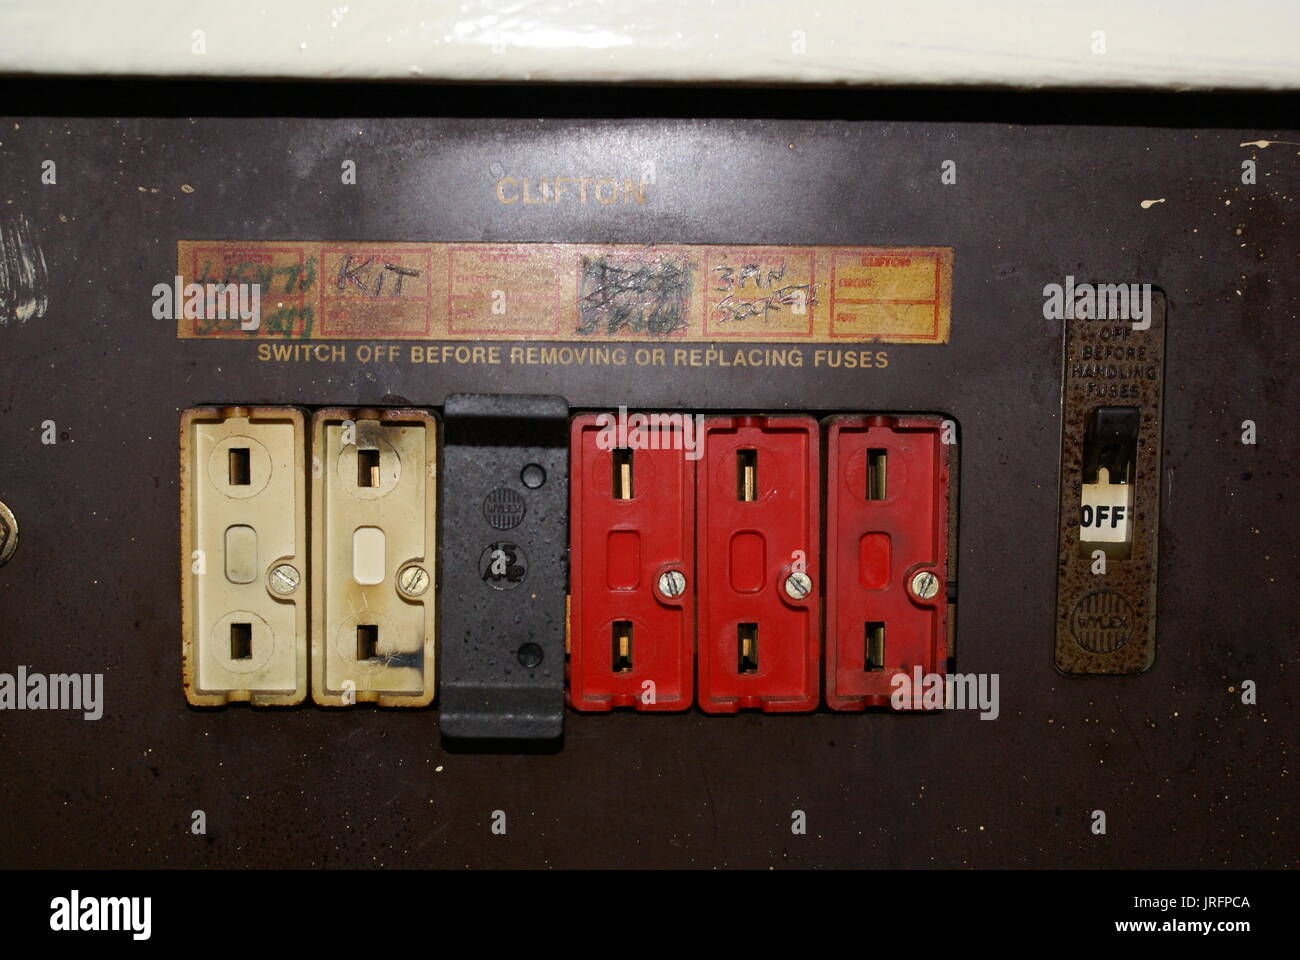 Electrical Fire Stock Photos Images Alamy 07 Jk Fuse Box Overload Image